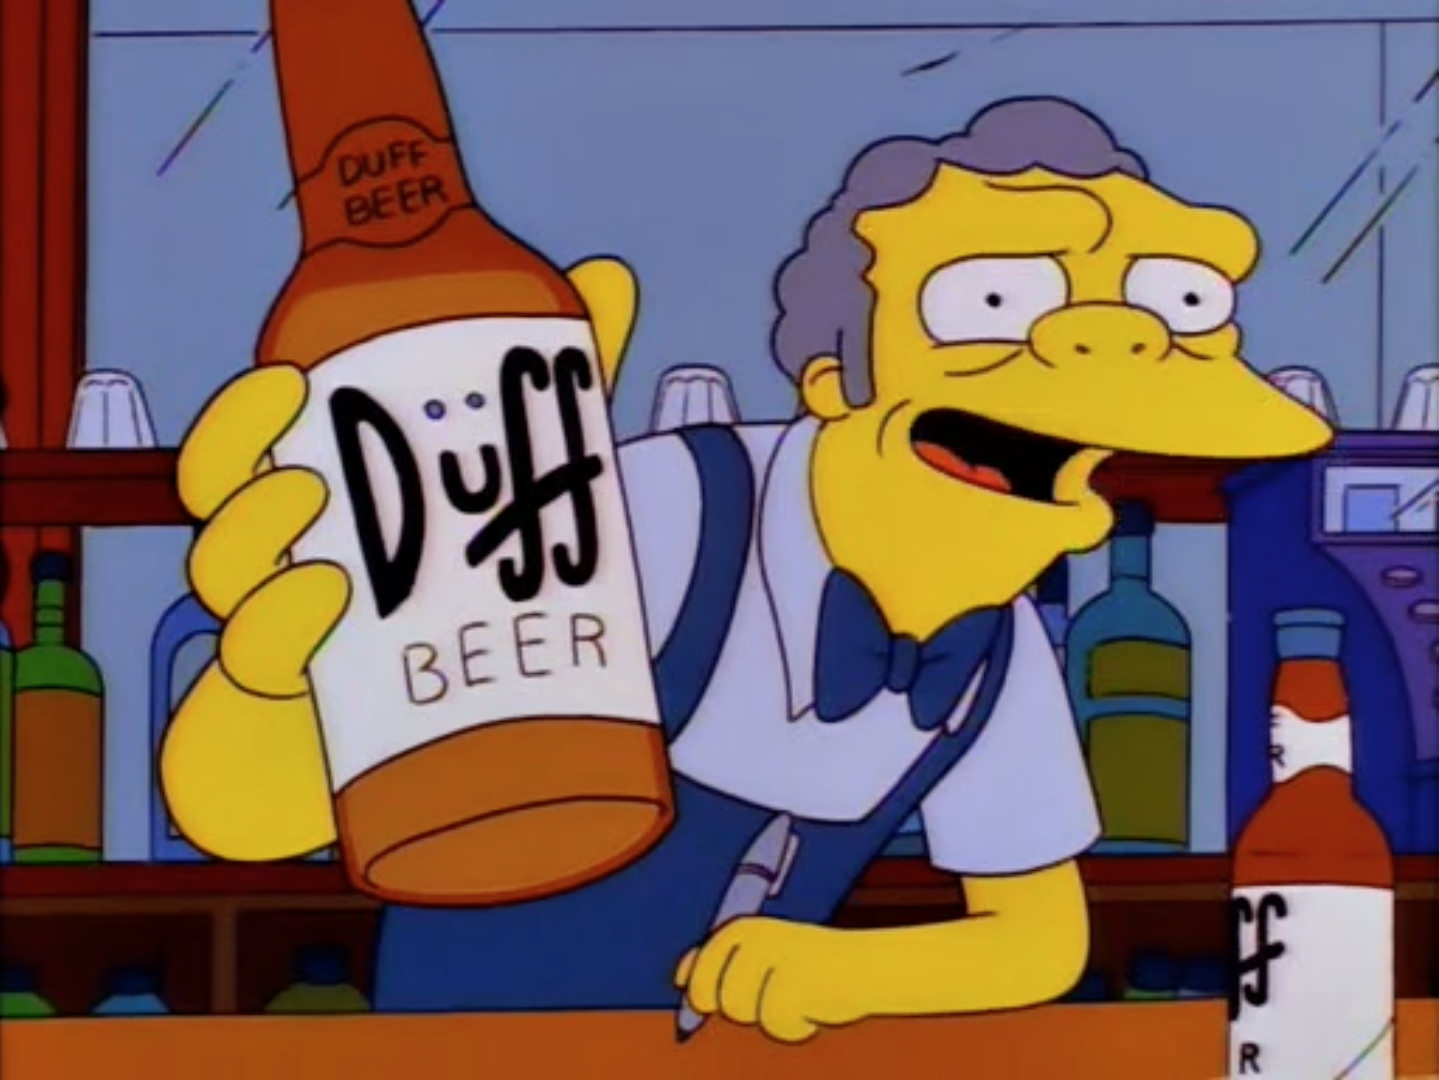 Duff Beer Will Soon Be a Reality!